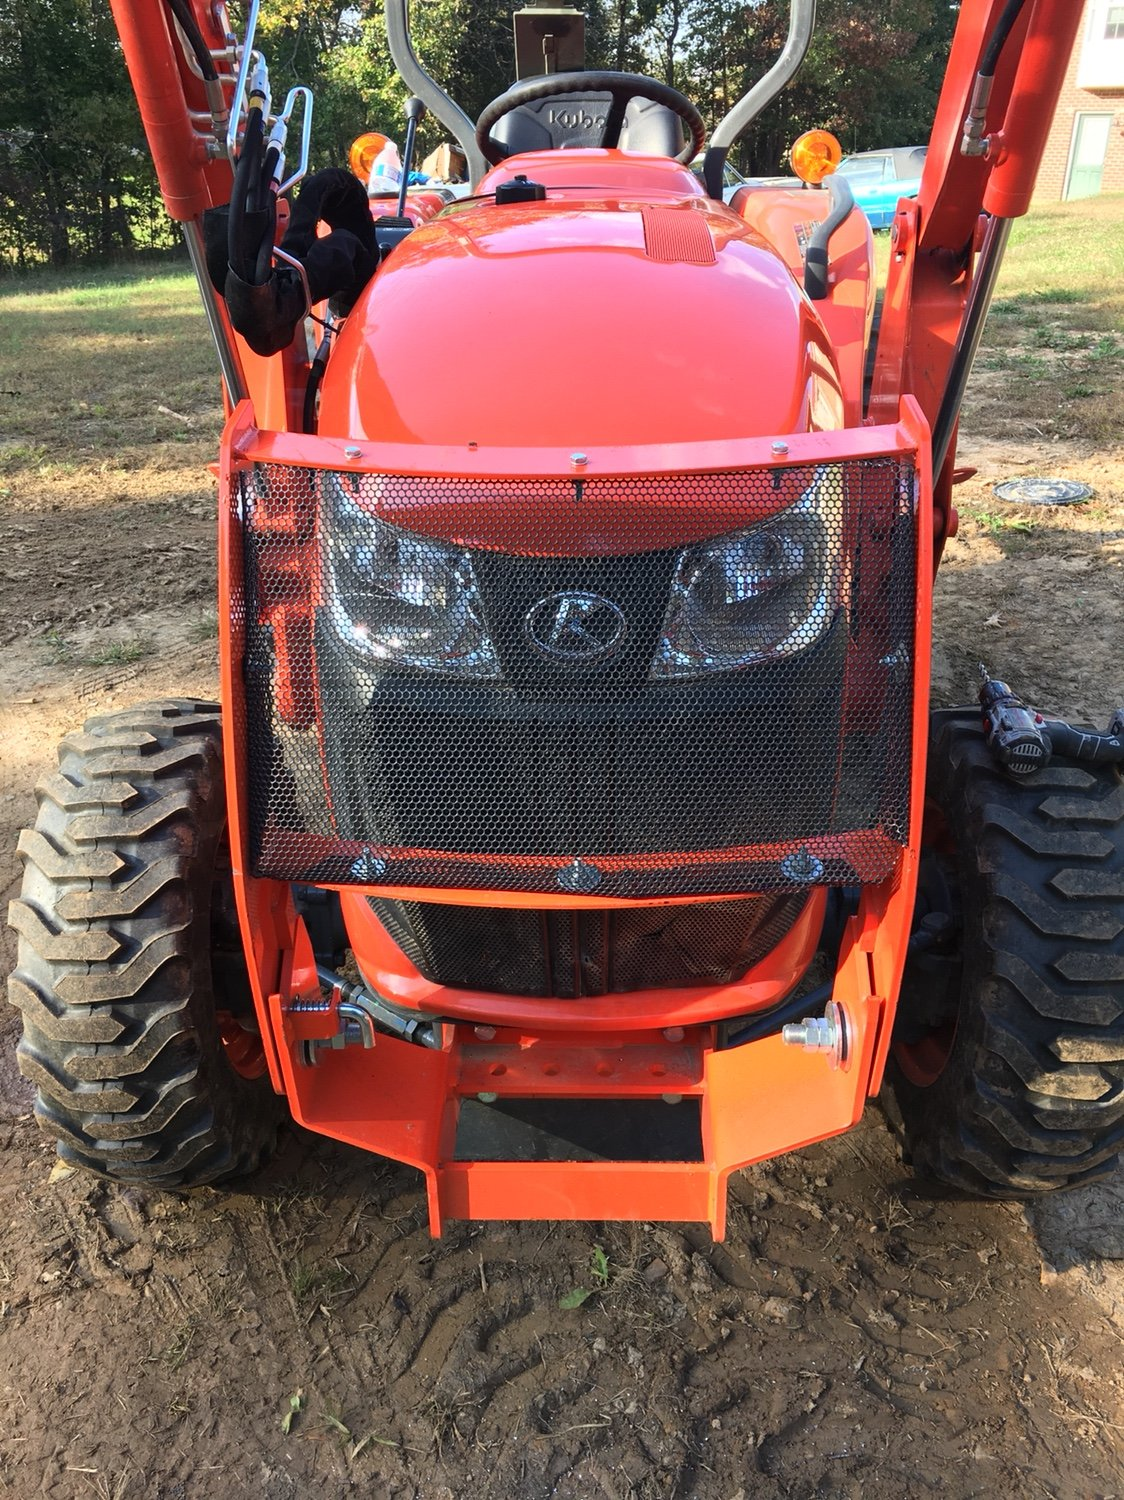 5055e Tractor Brush Guard : Added mesh to grille guard on l orangetractortalks